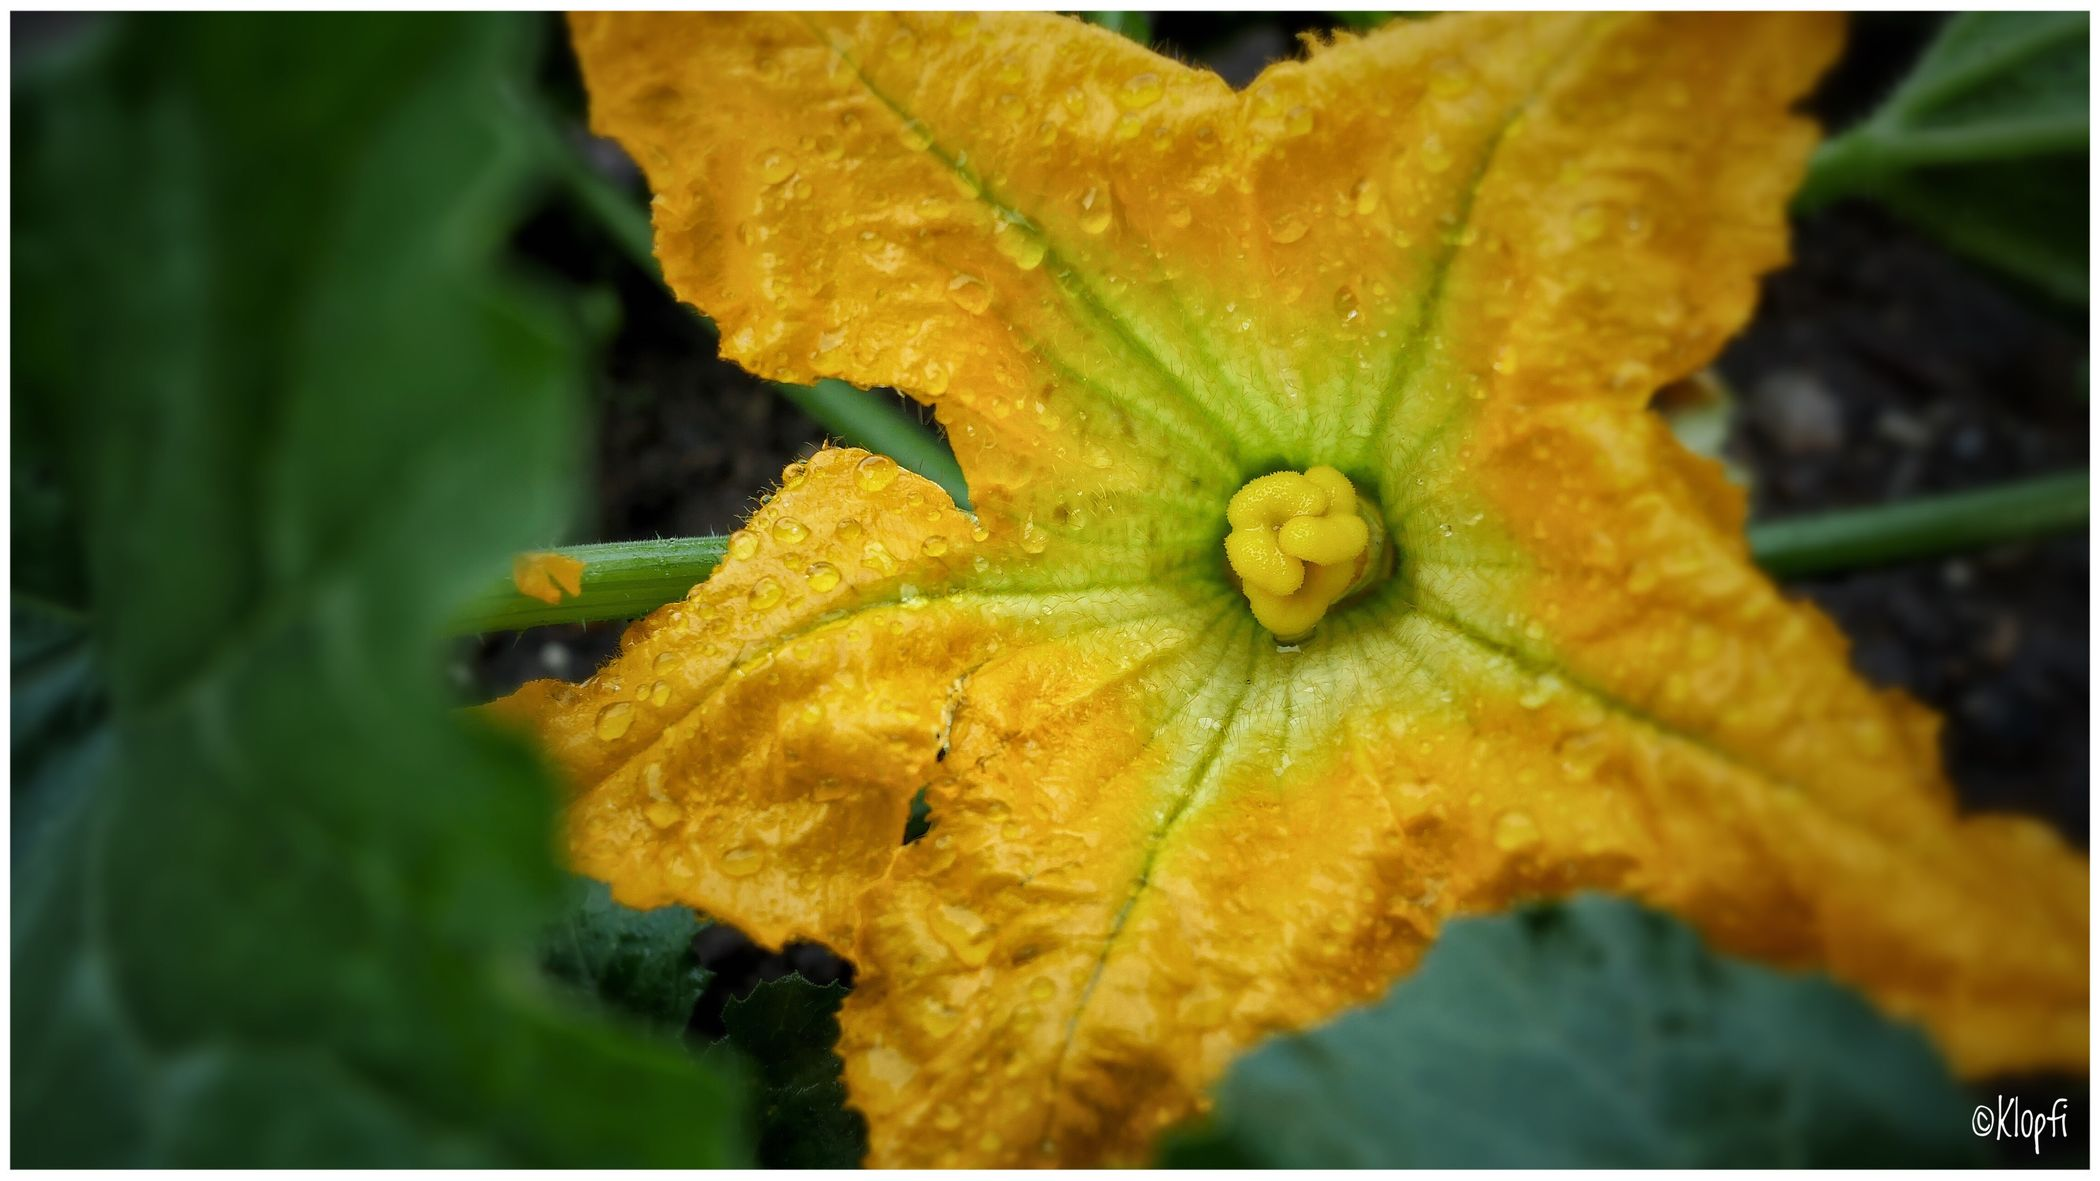 Close-up Nature Growth Fragility Drop Outdoors Beauty In Nature Day Selective Focus Flower Freshness Yellow Plant Wet Flower Head No People Water Leaf Petal Zuchinni  Zuchetti